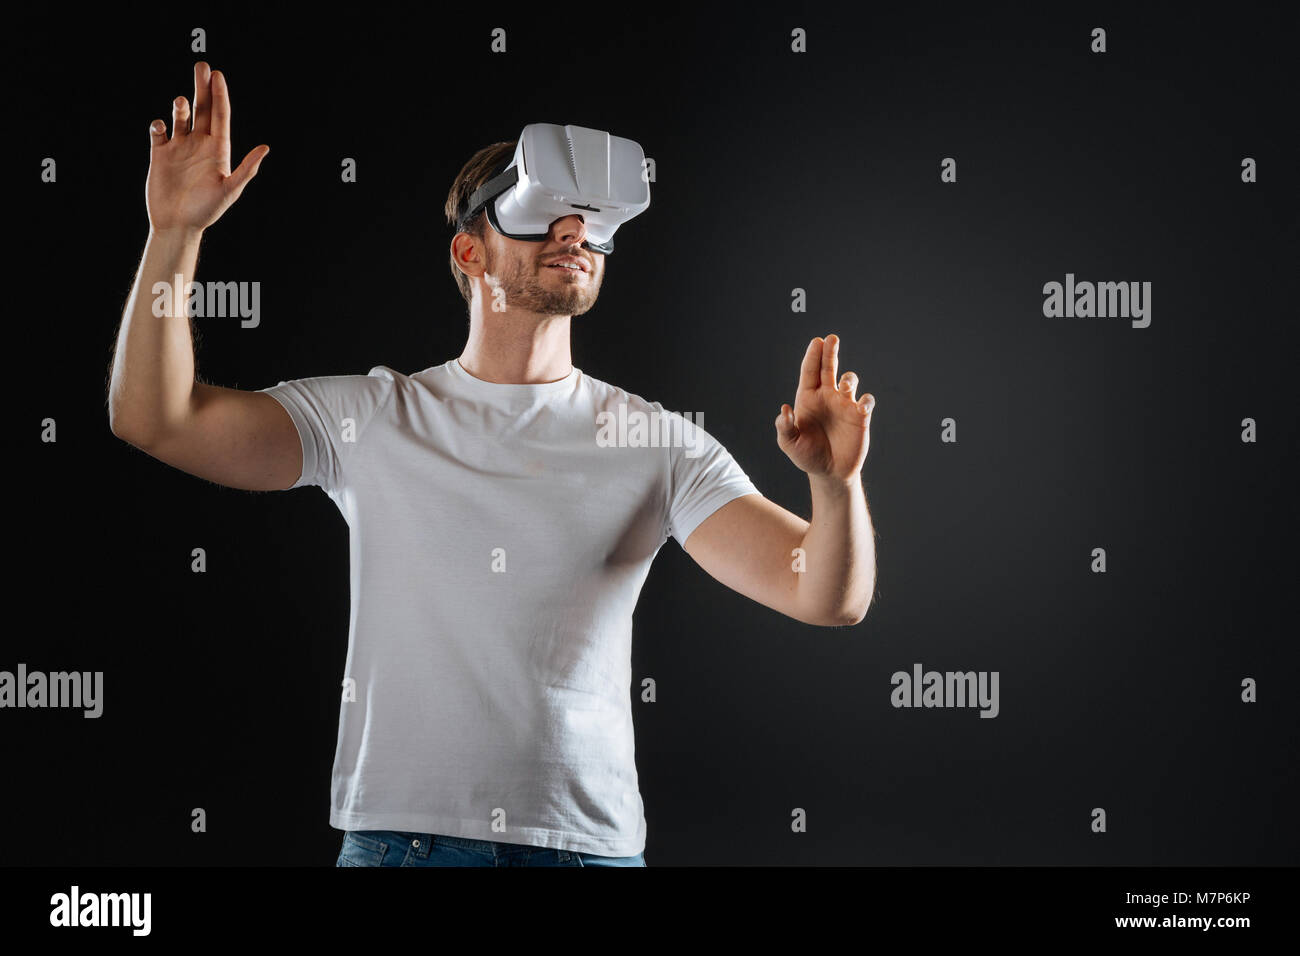 Stylish occupied man smiling and examining VR glasses. - Stock Image